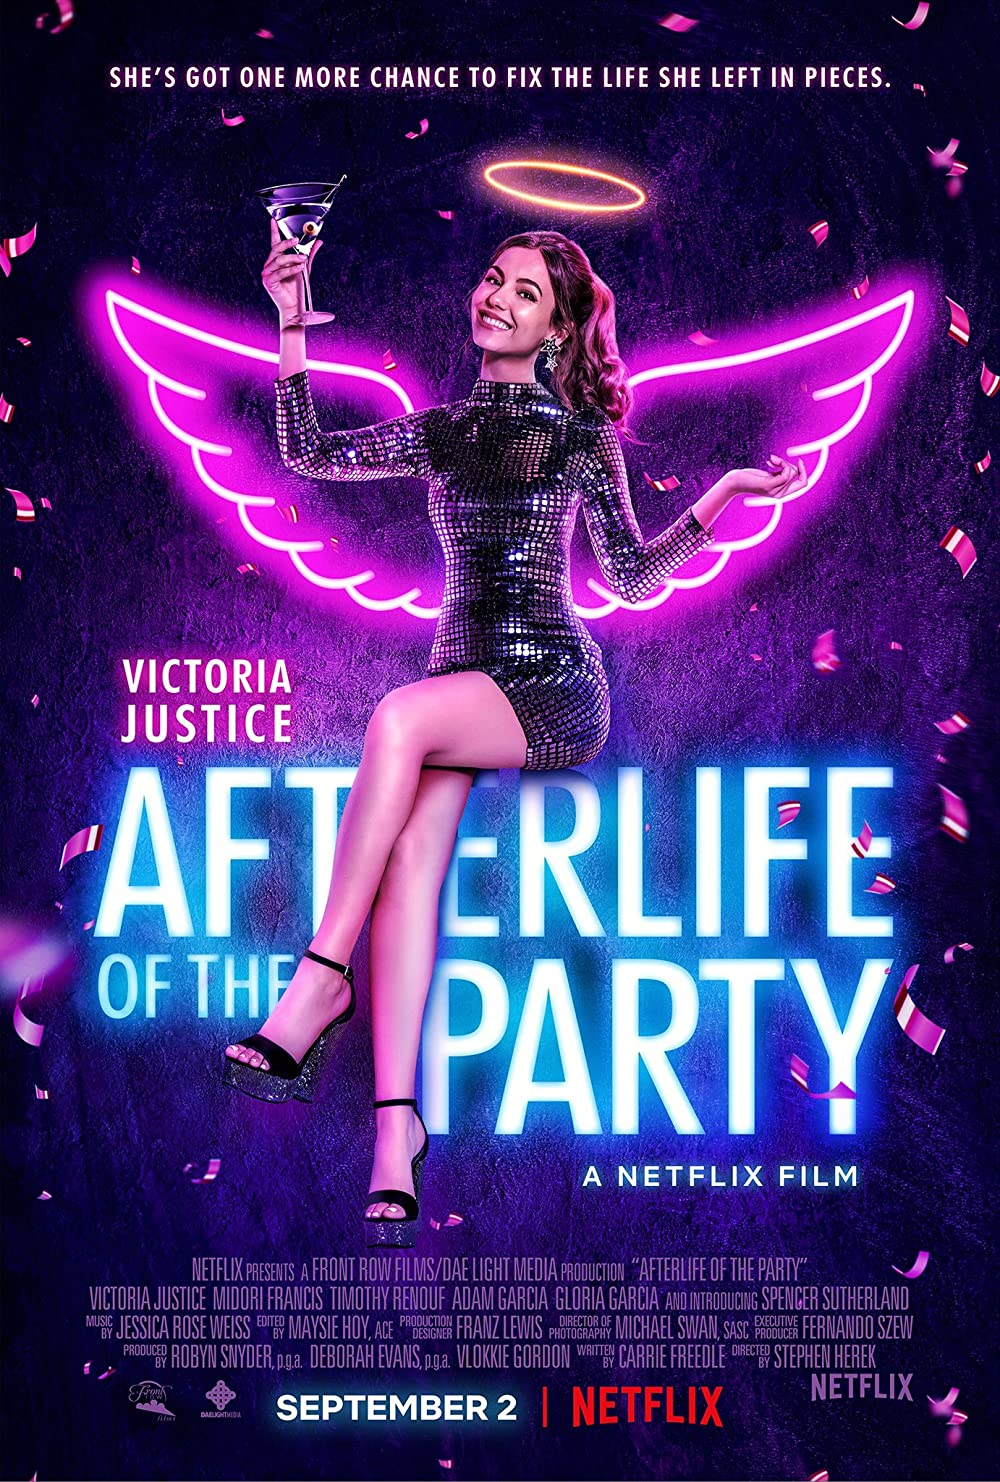 Afterlife of the Party poster